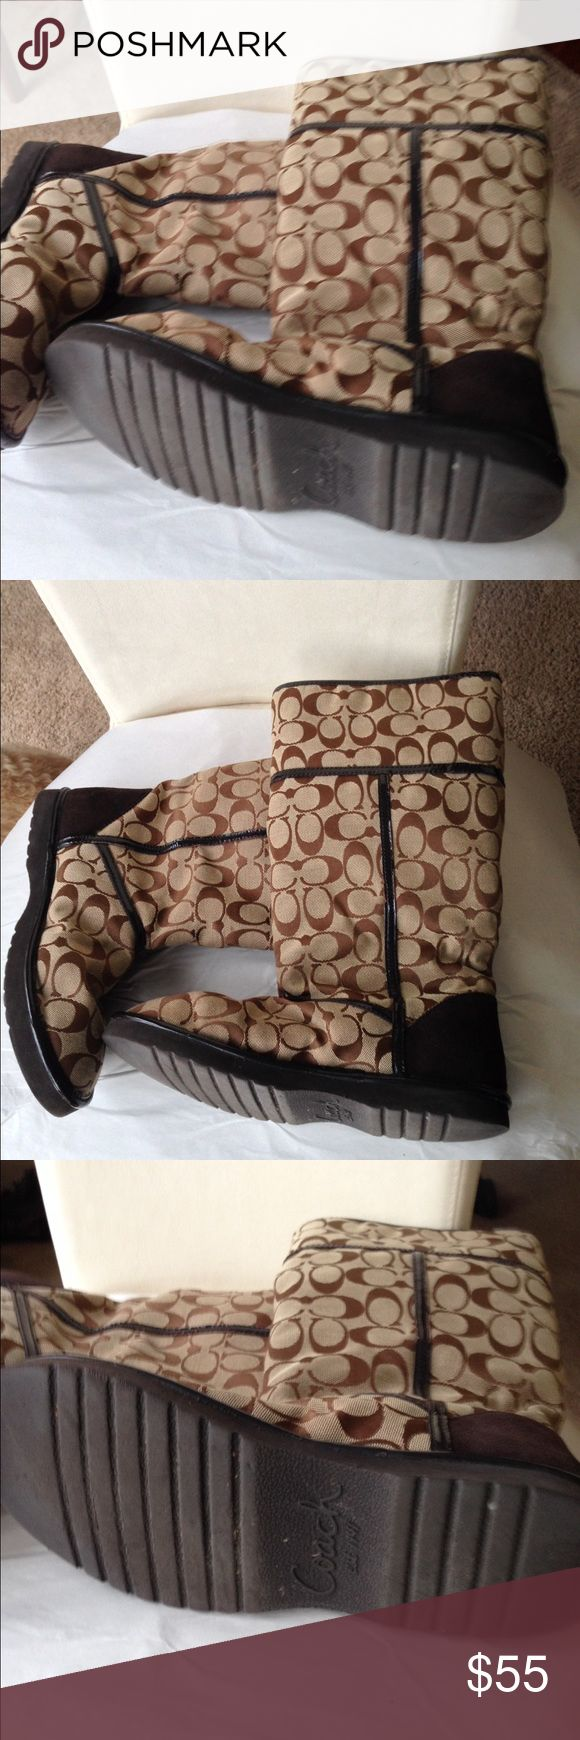 ☃️👢COACH Boots with fur inside👢 👢👠Adorable and cute COACH BOOTS 👢👠 COACH Shoes